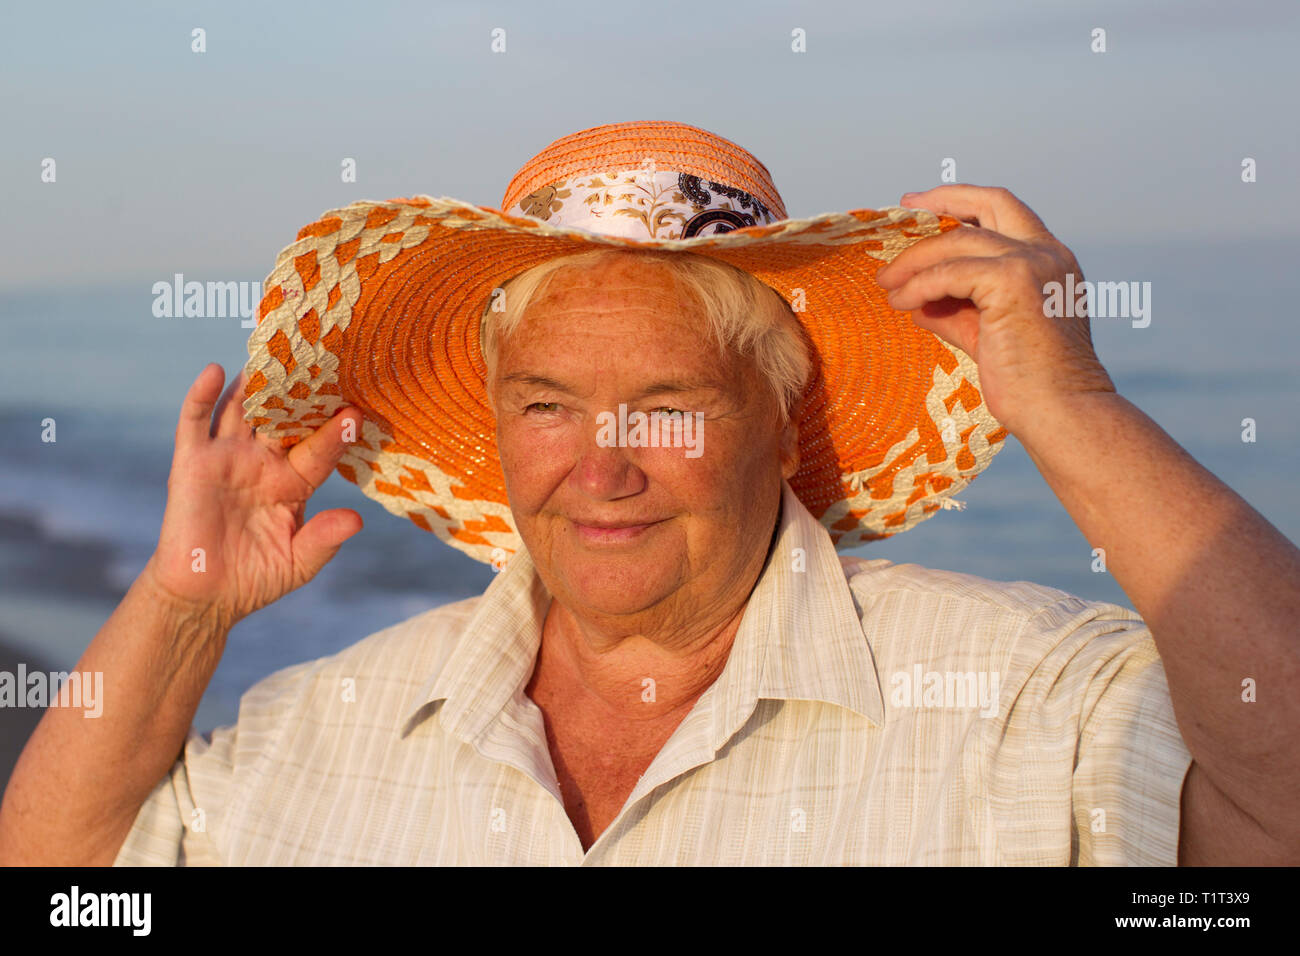 Beautiful elderly woman in a hat on the background of the sea. Face of an old woman with a smile. Grandma on vacation - Stock Image